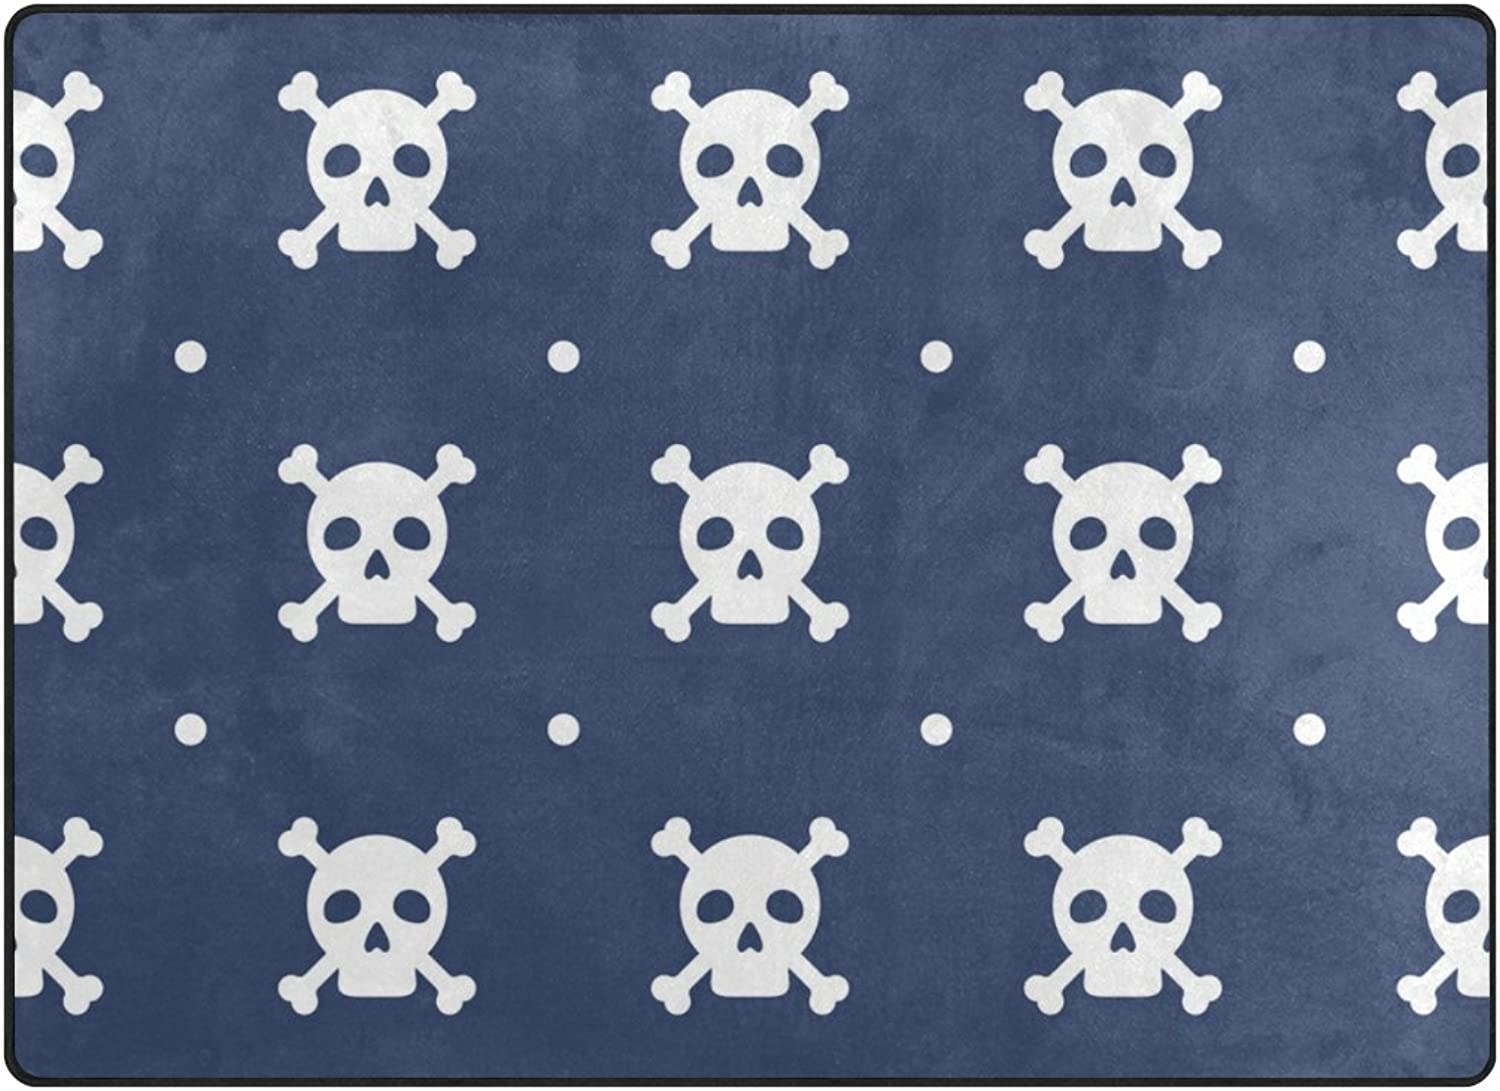 SUABO 80 x 58 inches Area Rug Non-Slip Floor Mat Skull Printed Doormats for Living Room Bedroom